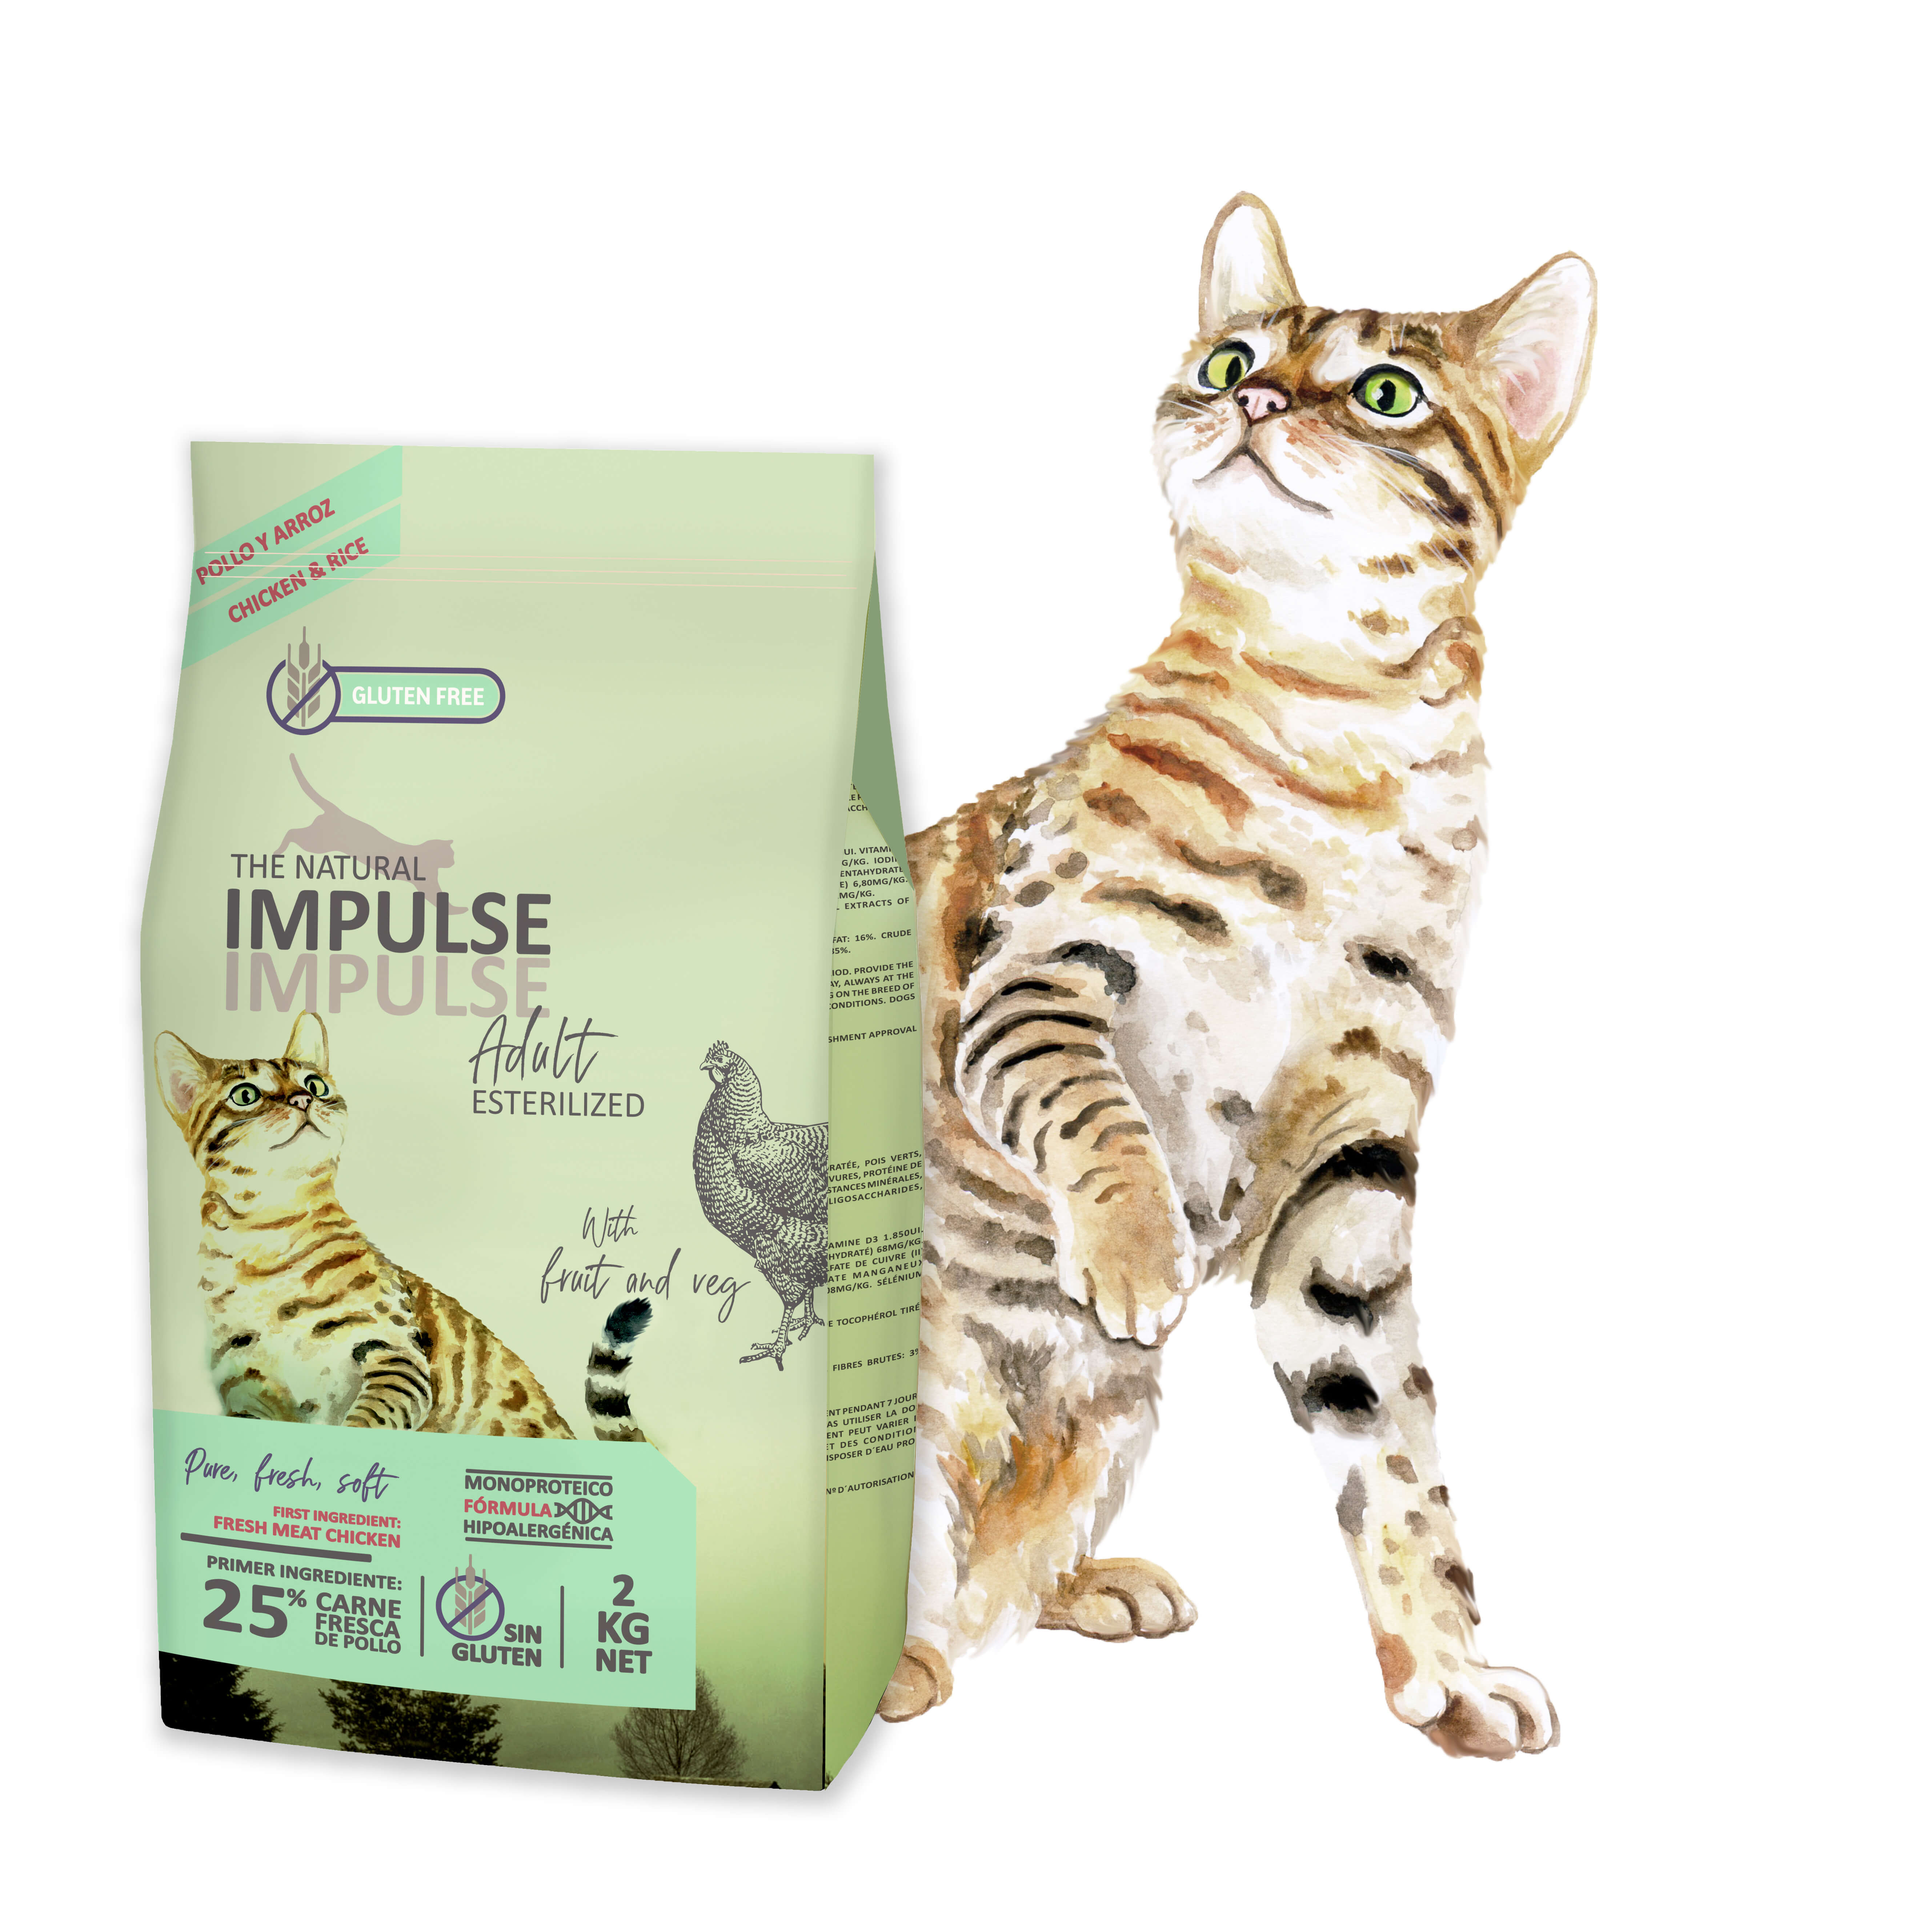 The Natural Impulse Cat Adult Sterilized